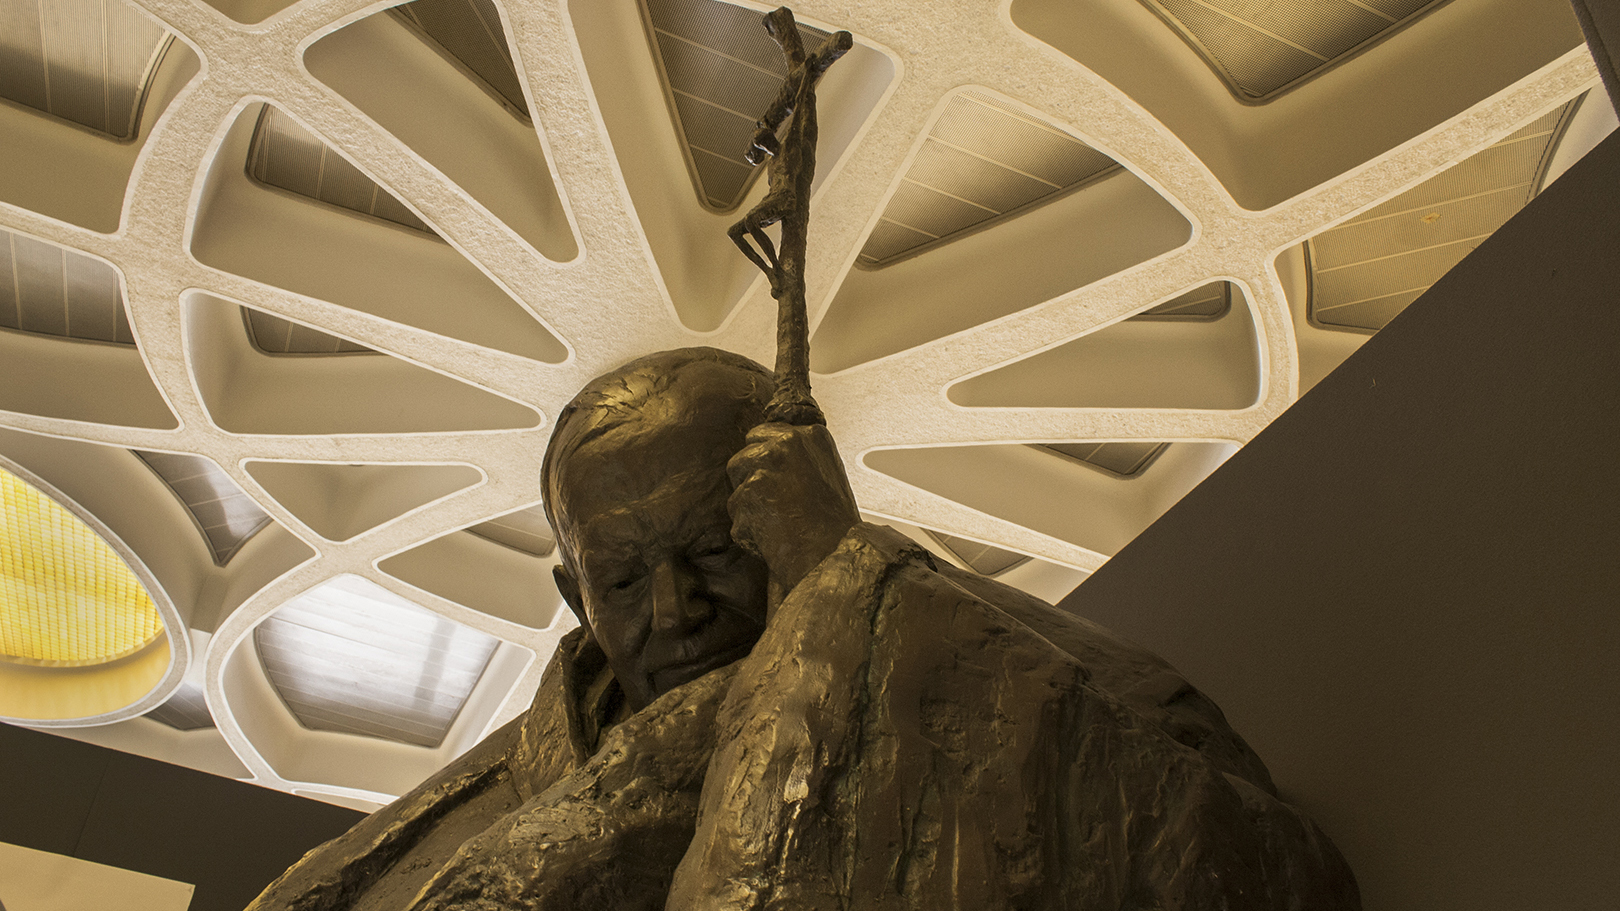 A bronze statue inside the Vatican of the late Pope John Paul II, who died in 2005 and became a saint on April 27, 2014.